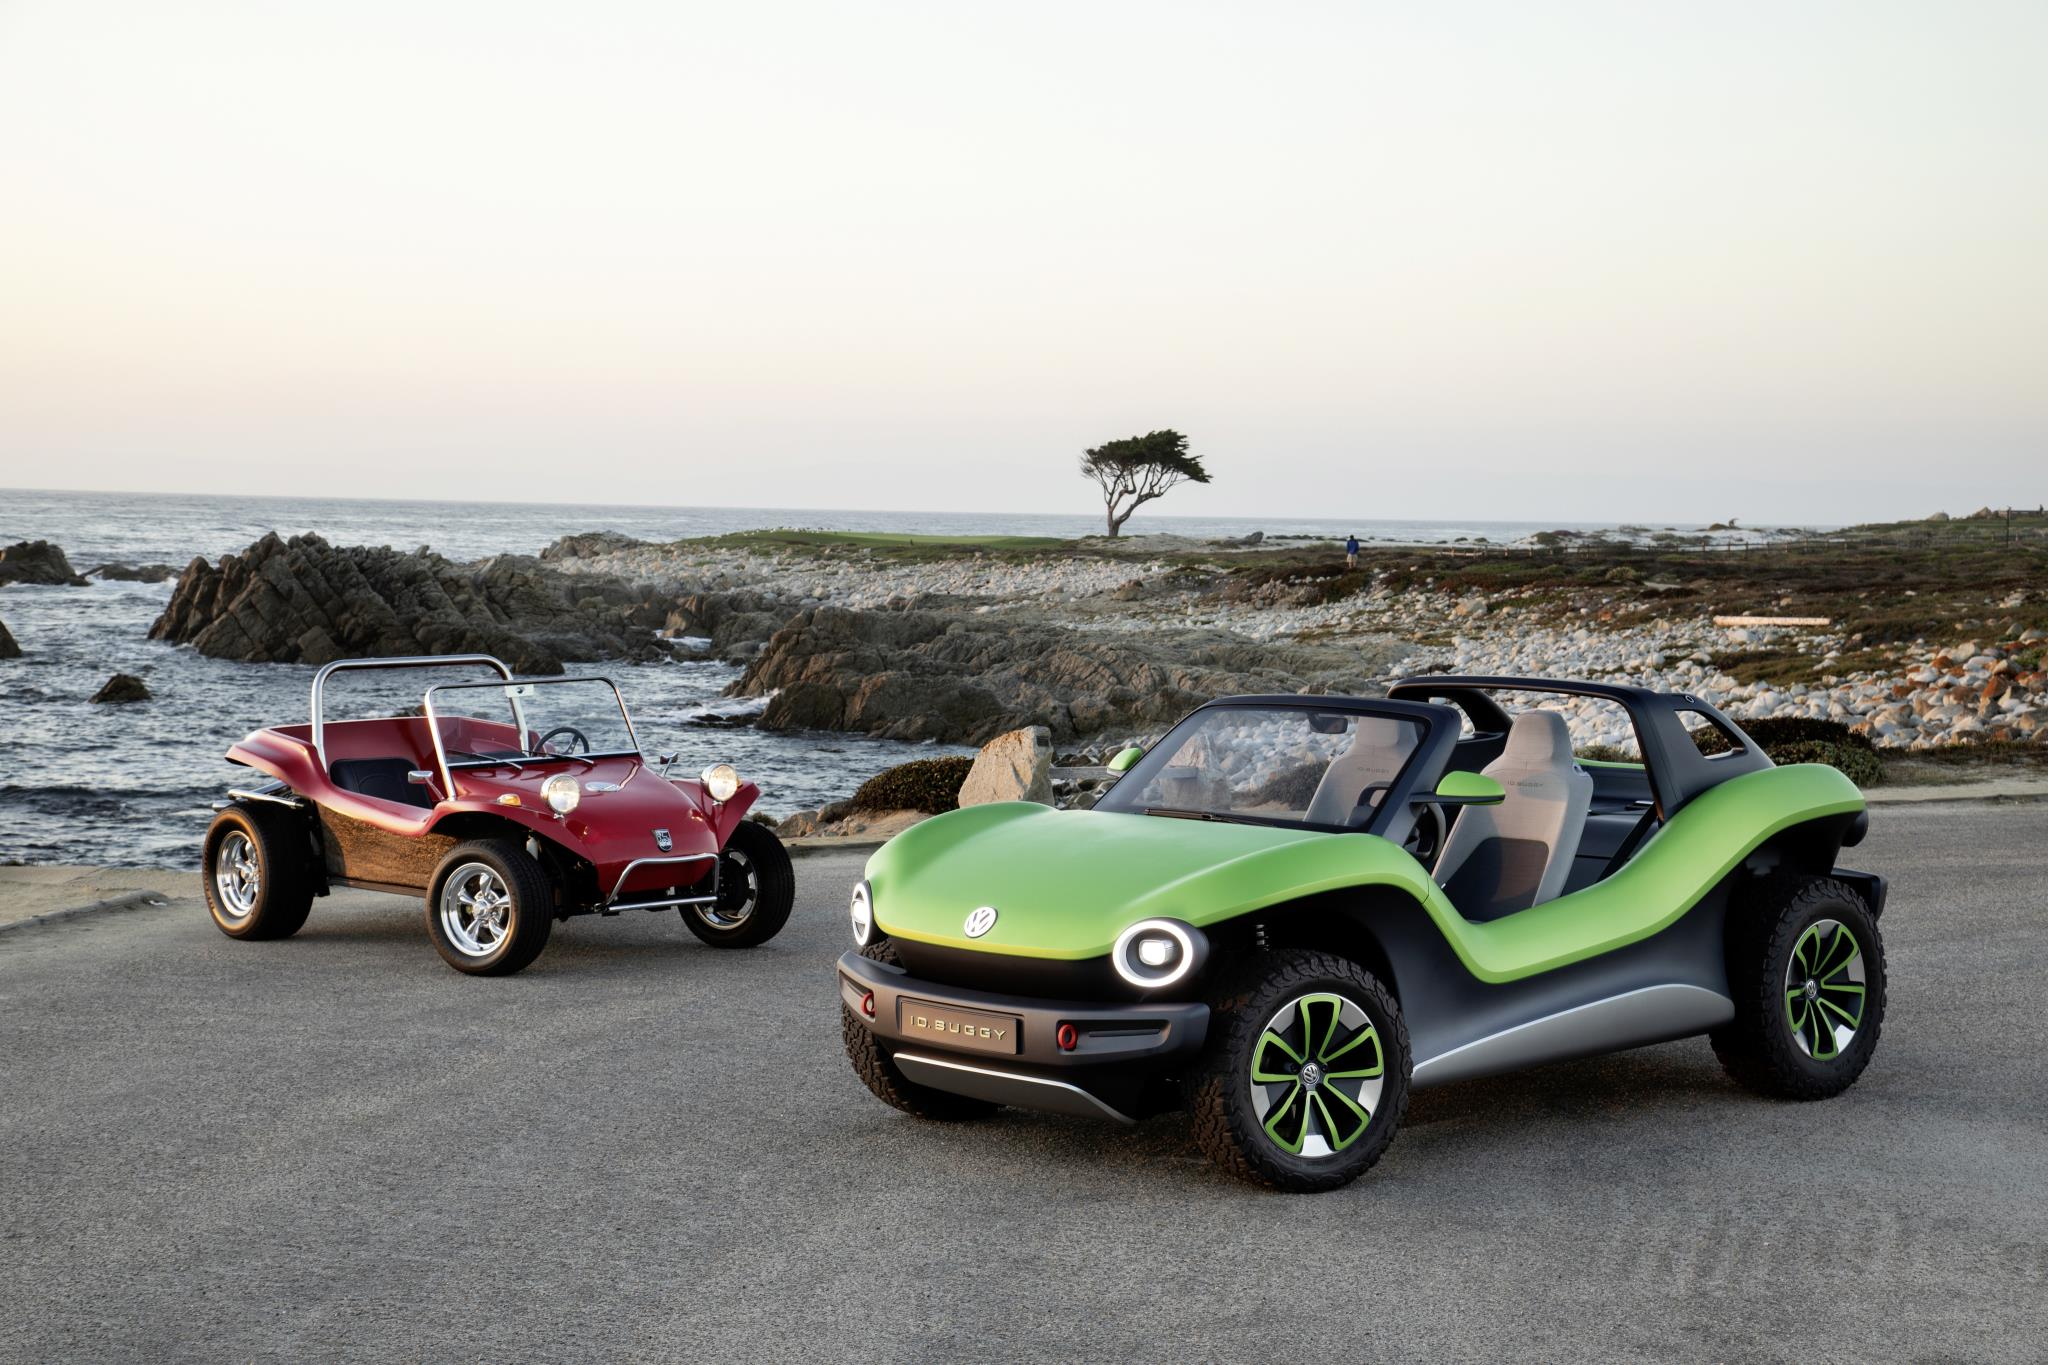 Volkswagen ID. Buggy shown at Pebble Beach